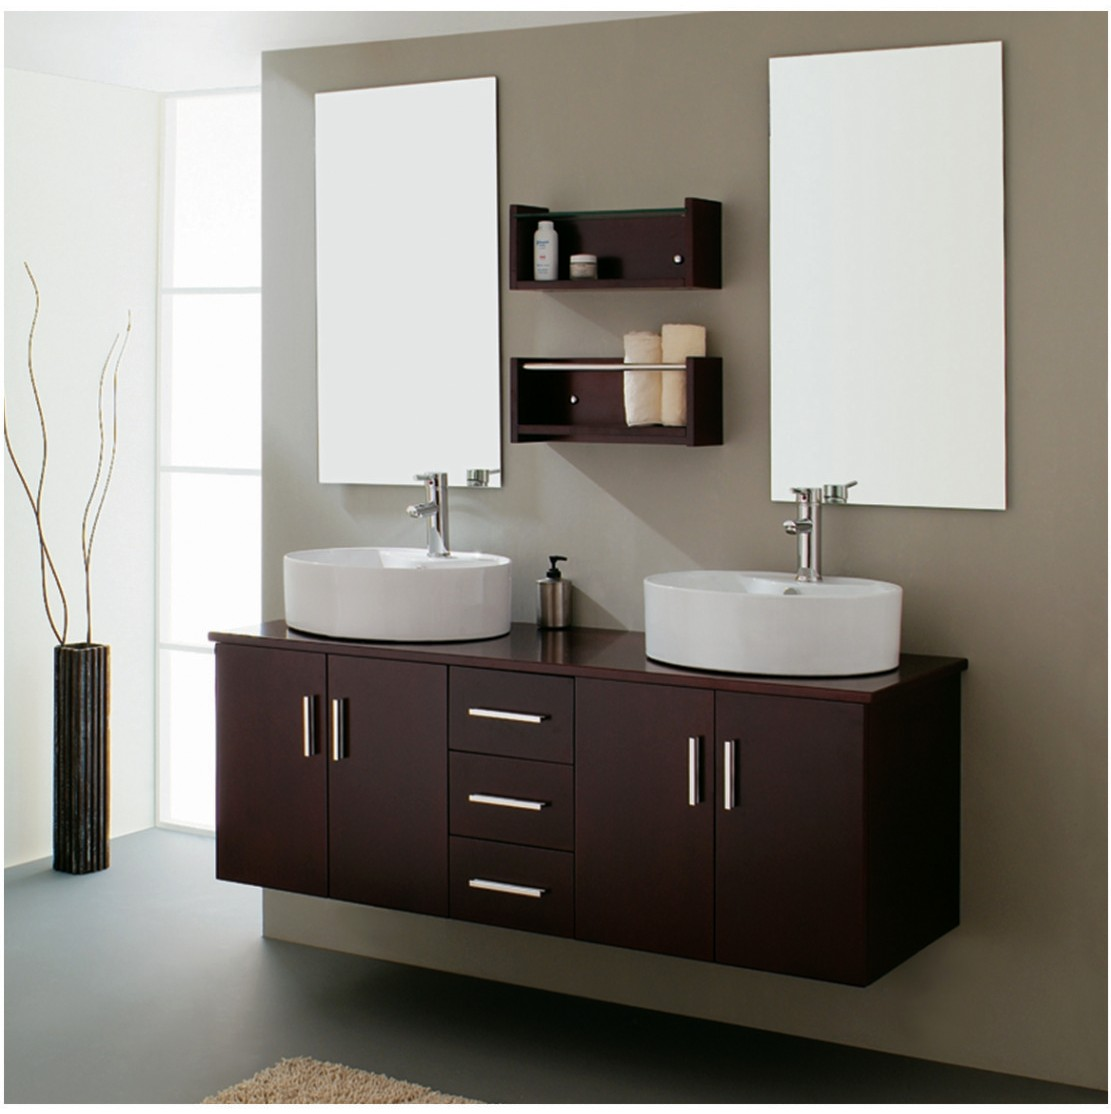 Modern bathroom double sink home decorating ideas for Modern bathroom cabinets ideas